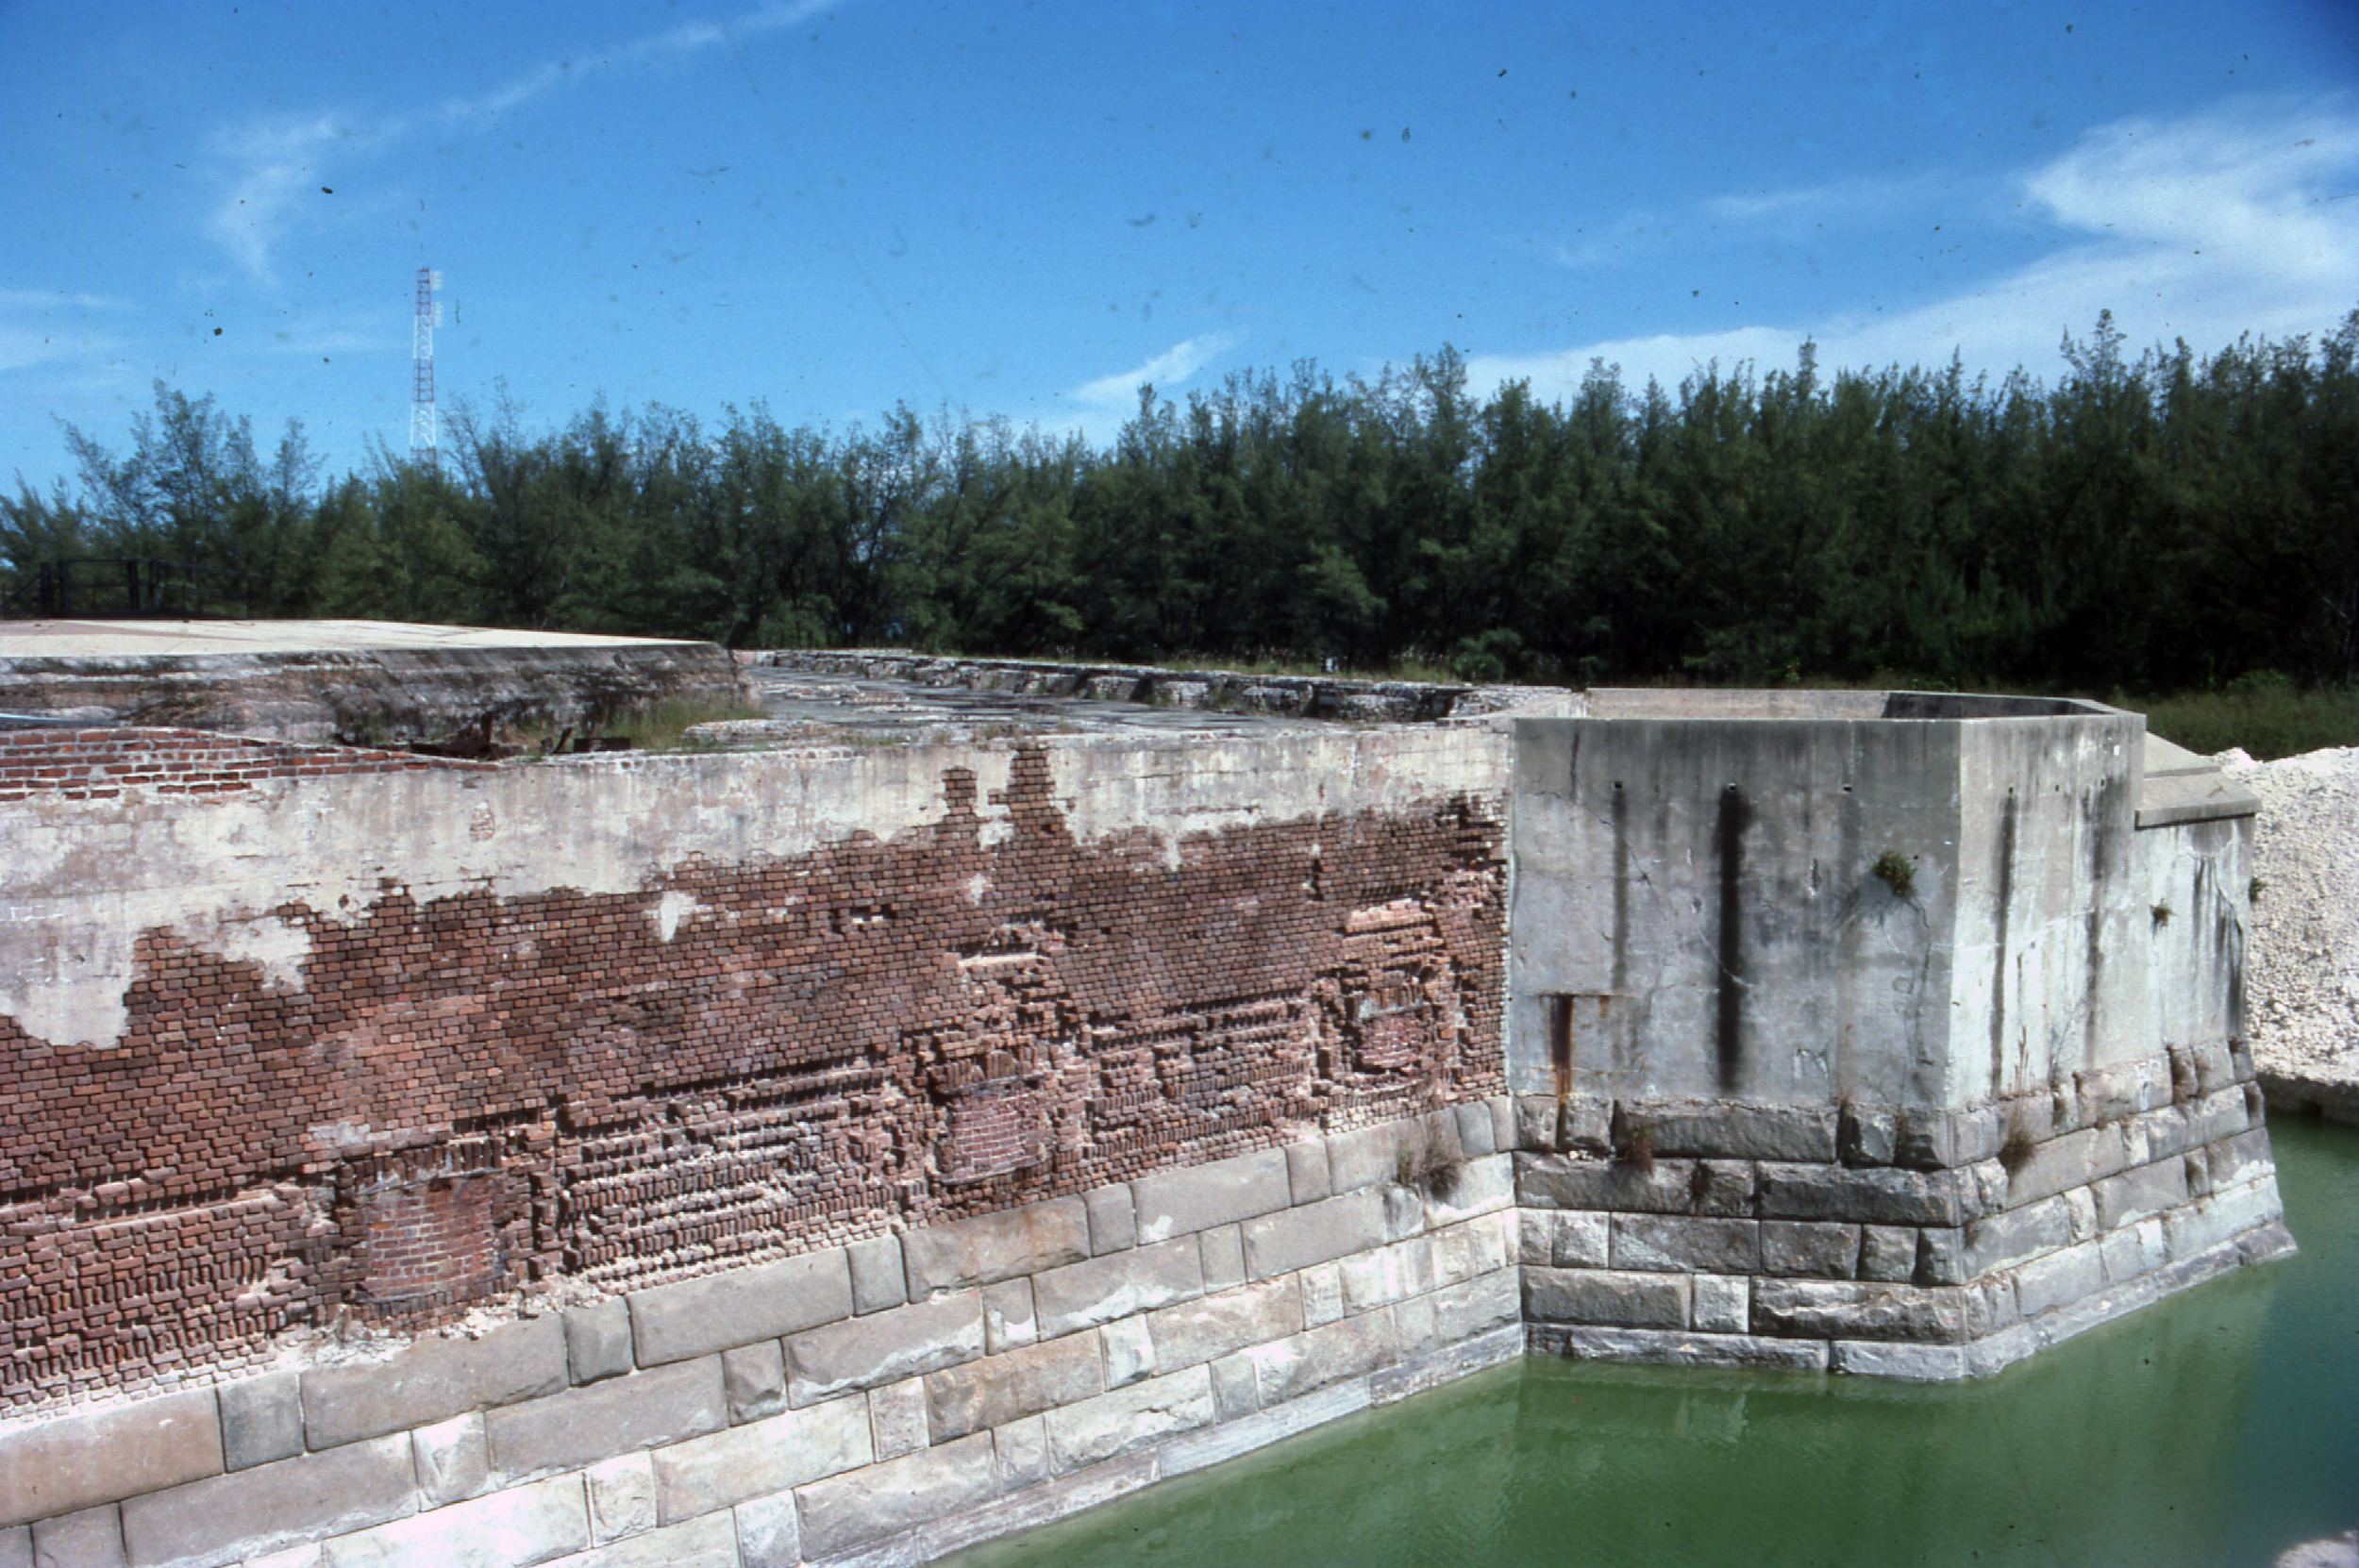 1988 - Moat placed along Fort walls, fill excavated from around the structure